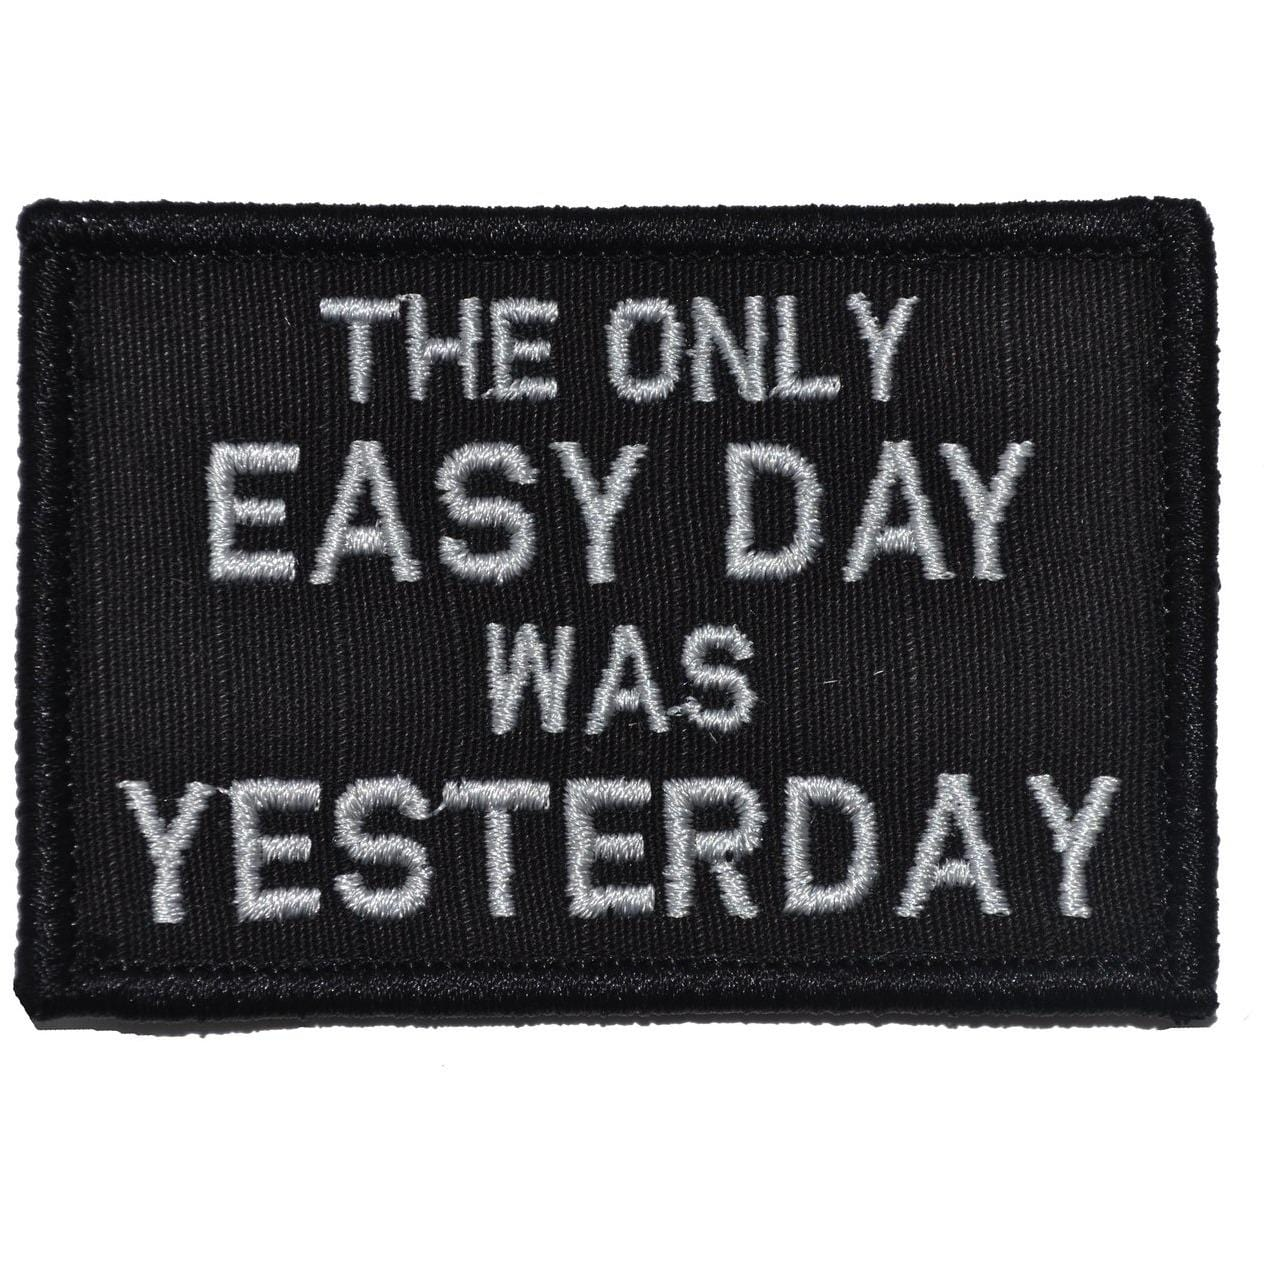 The Only Easy Day Was Yesterday, Navy Seal Motto - 2x3 Patch